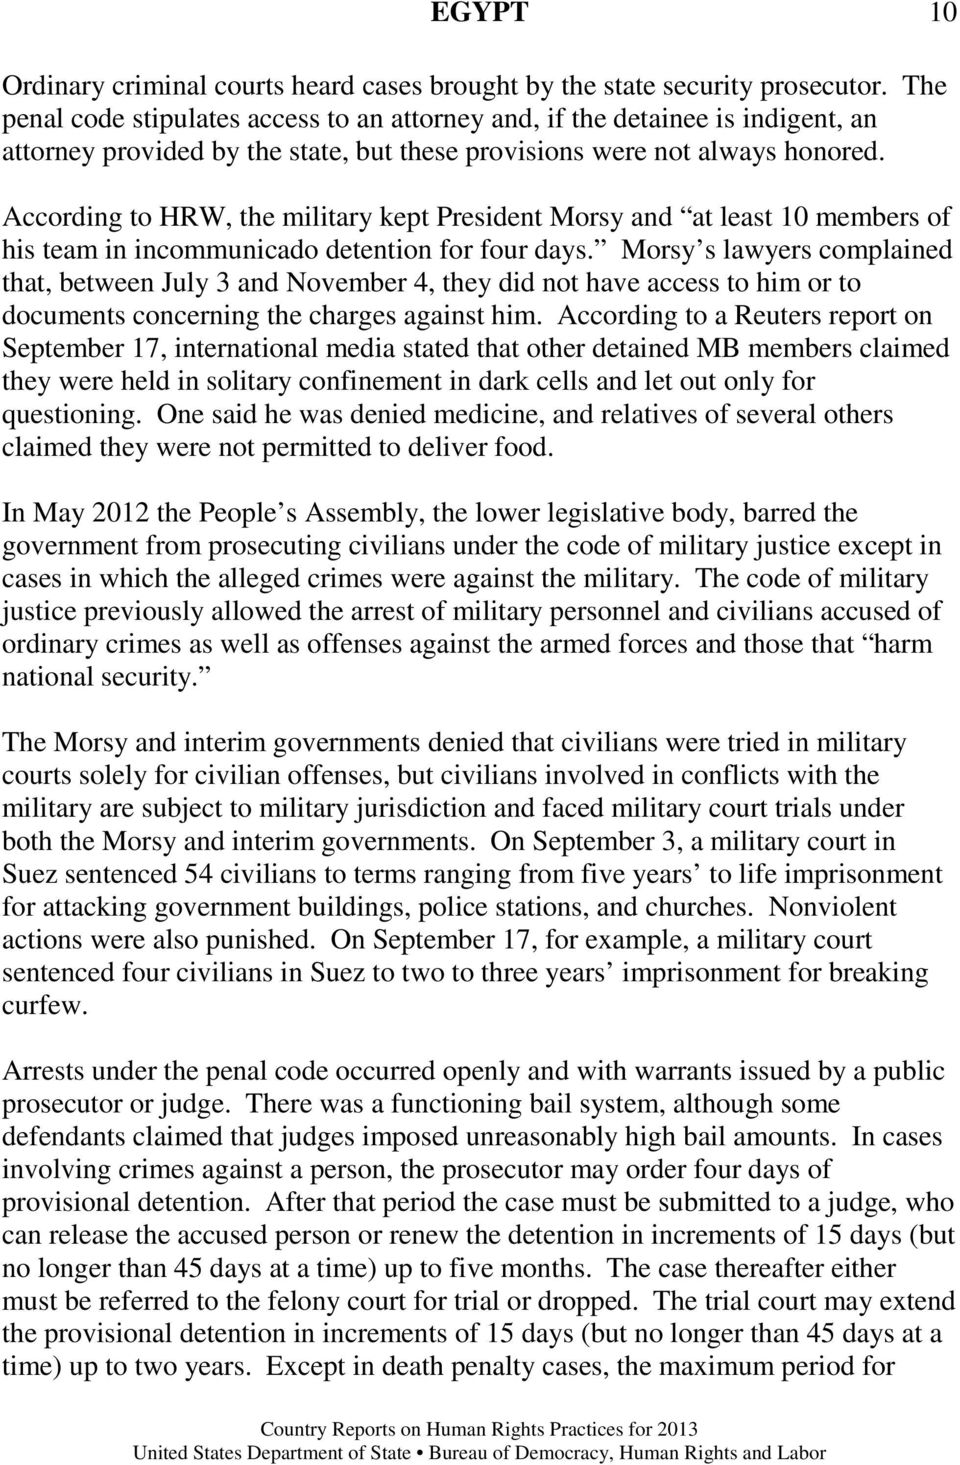 According to HRW, the military kept President Morsy and at least 10 members of his team in incommunicado detention for four days.